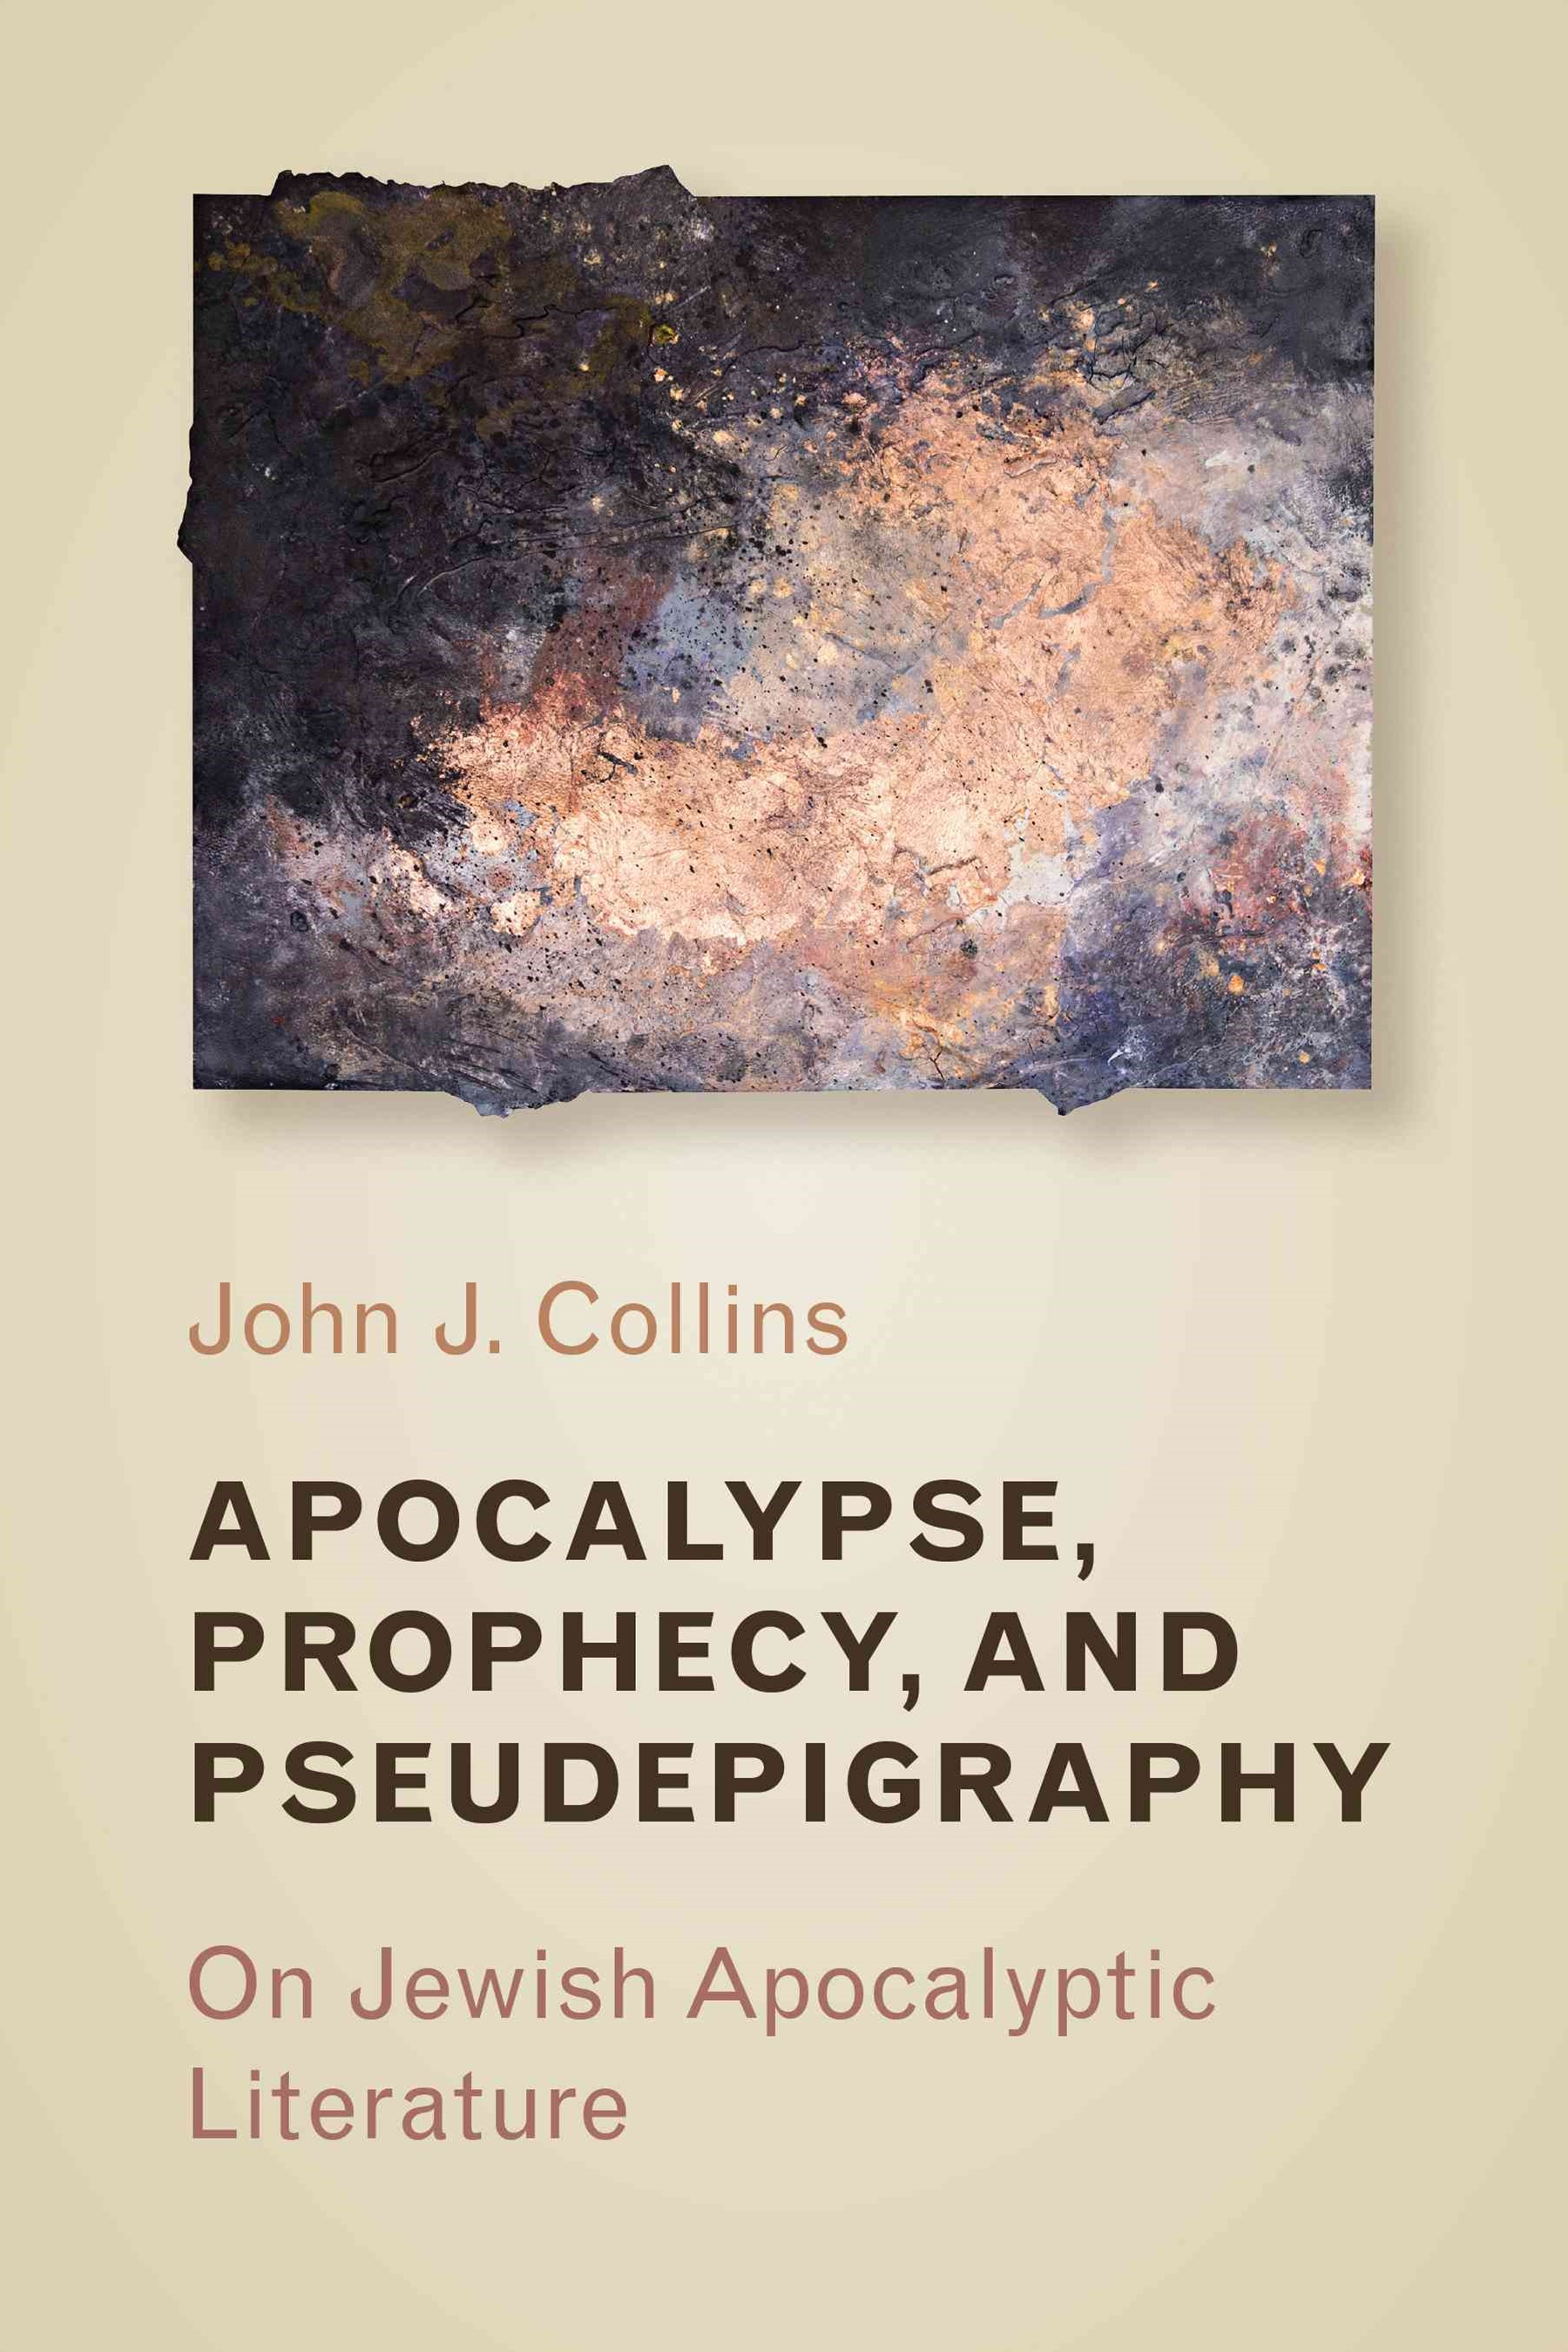 Apocalypse, Prophecy, and Pseudepigraphy